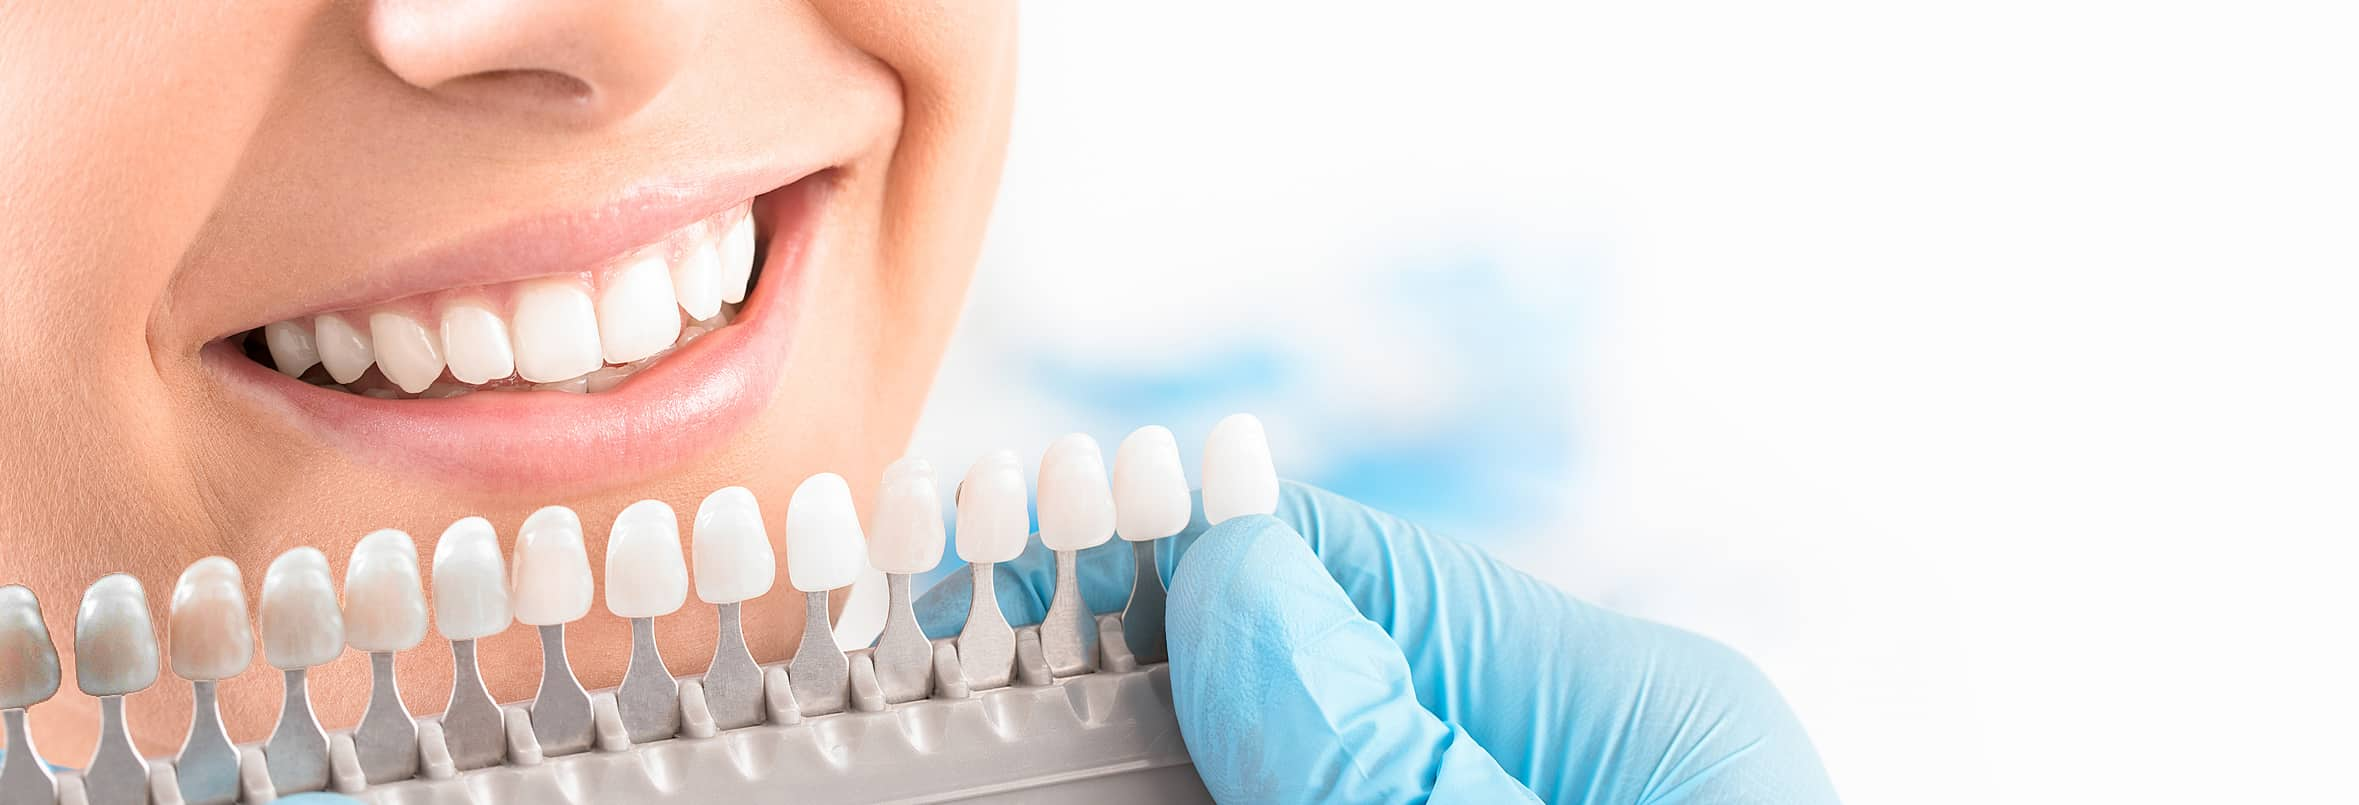 teeth whitening chart Best teeth whitening at home by your Lincoln, NE dentist